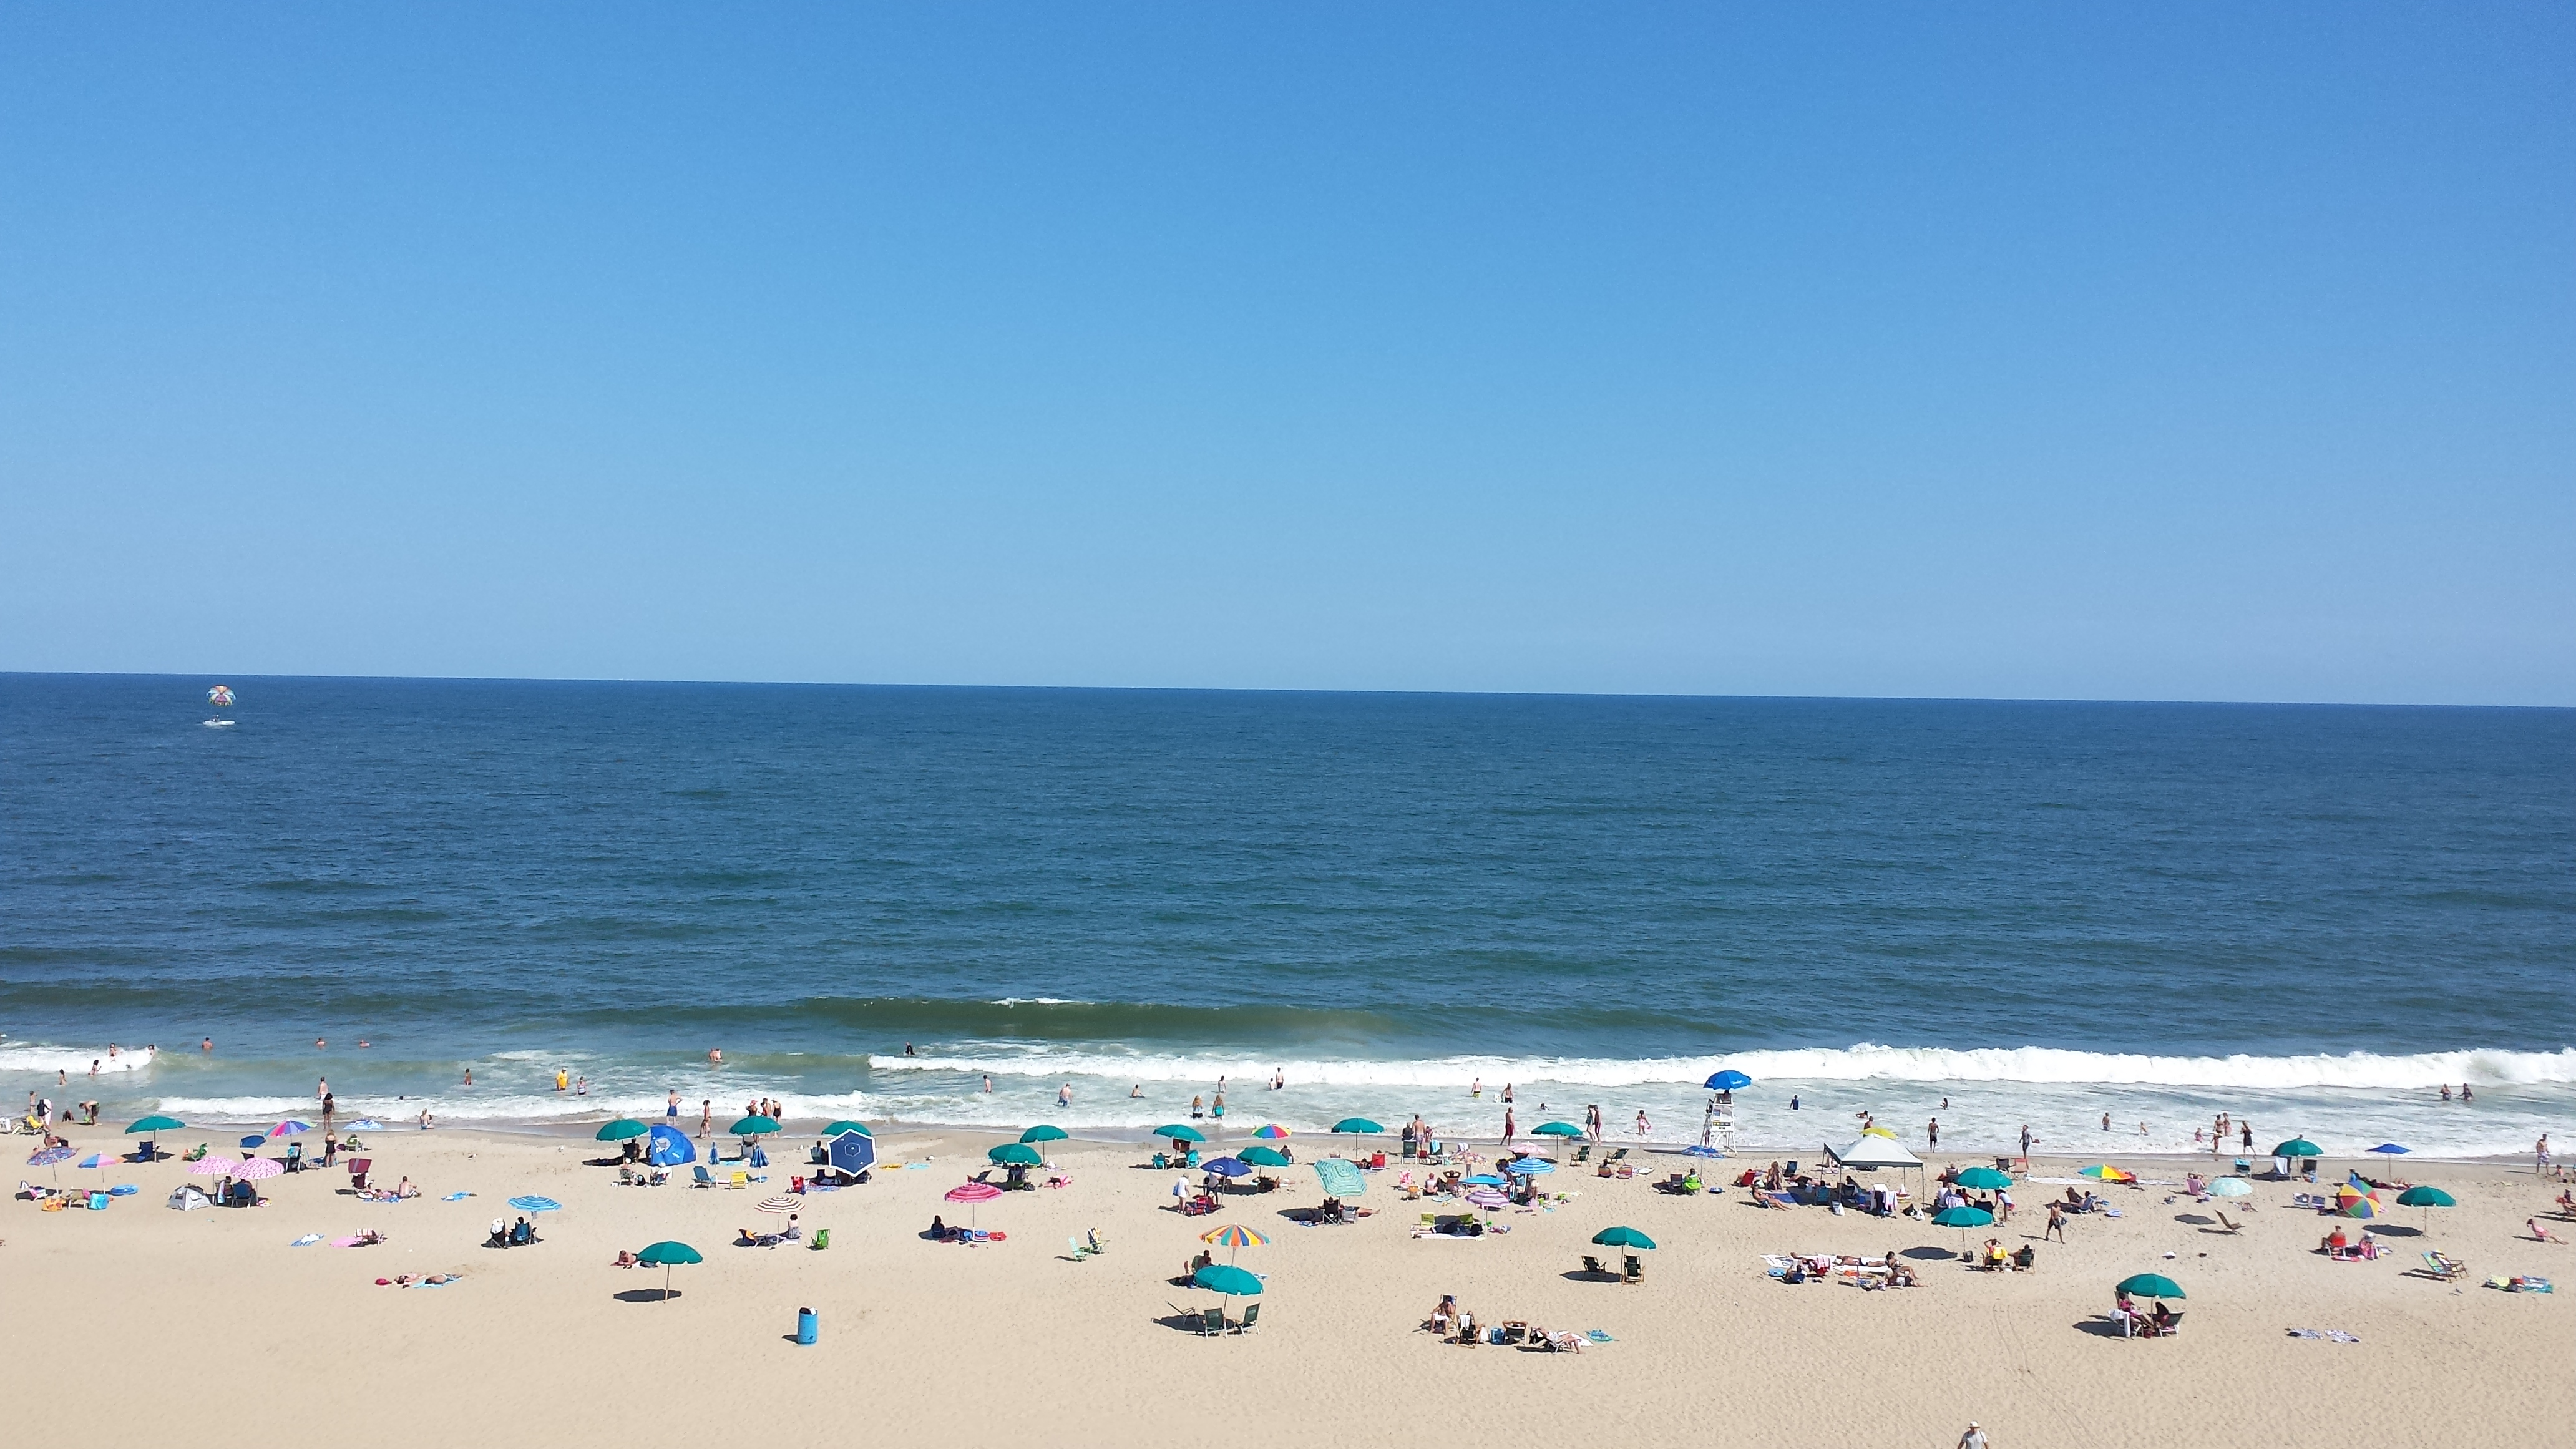 Just an average day in Ocean City, Maryland. by SpiderTrekfan616